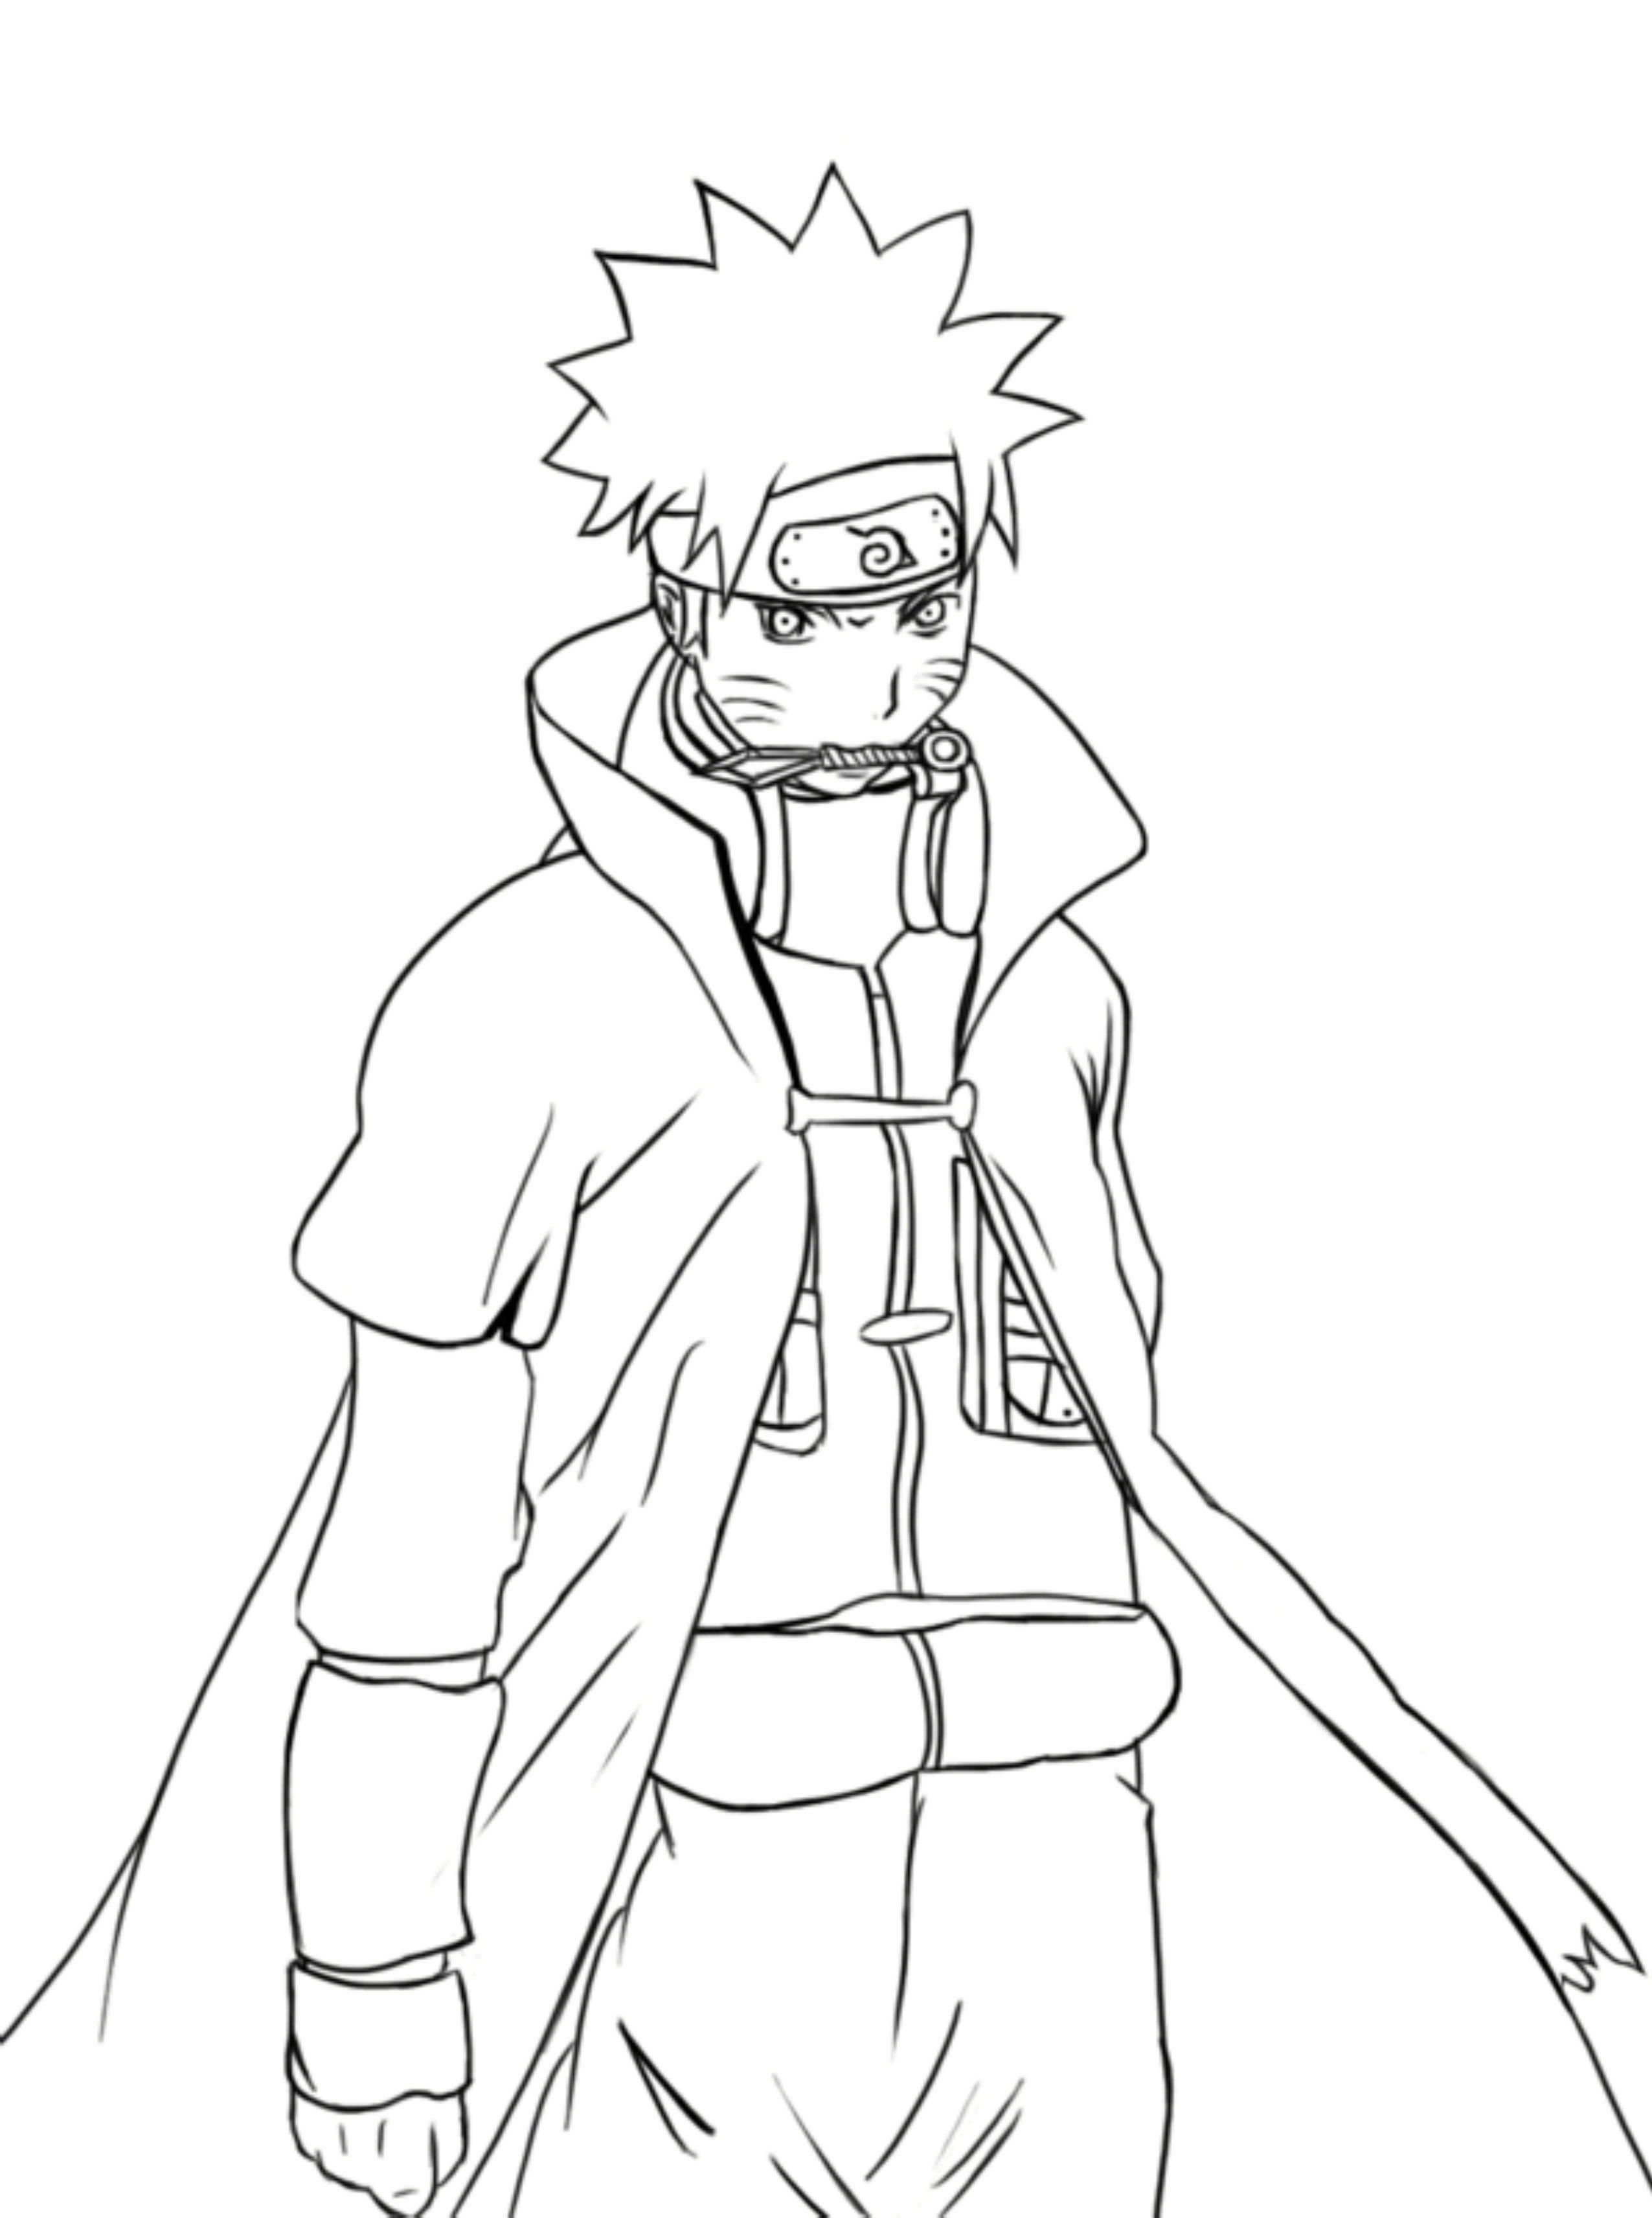 2551x3424 Naruto Characters Anime Coloring Pages For Kids Lovely Manga